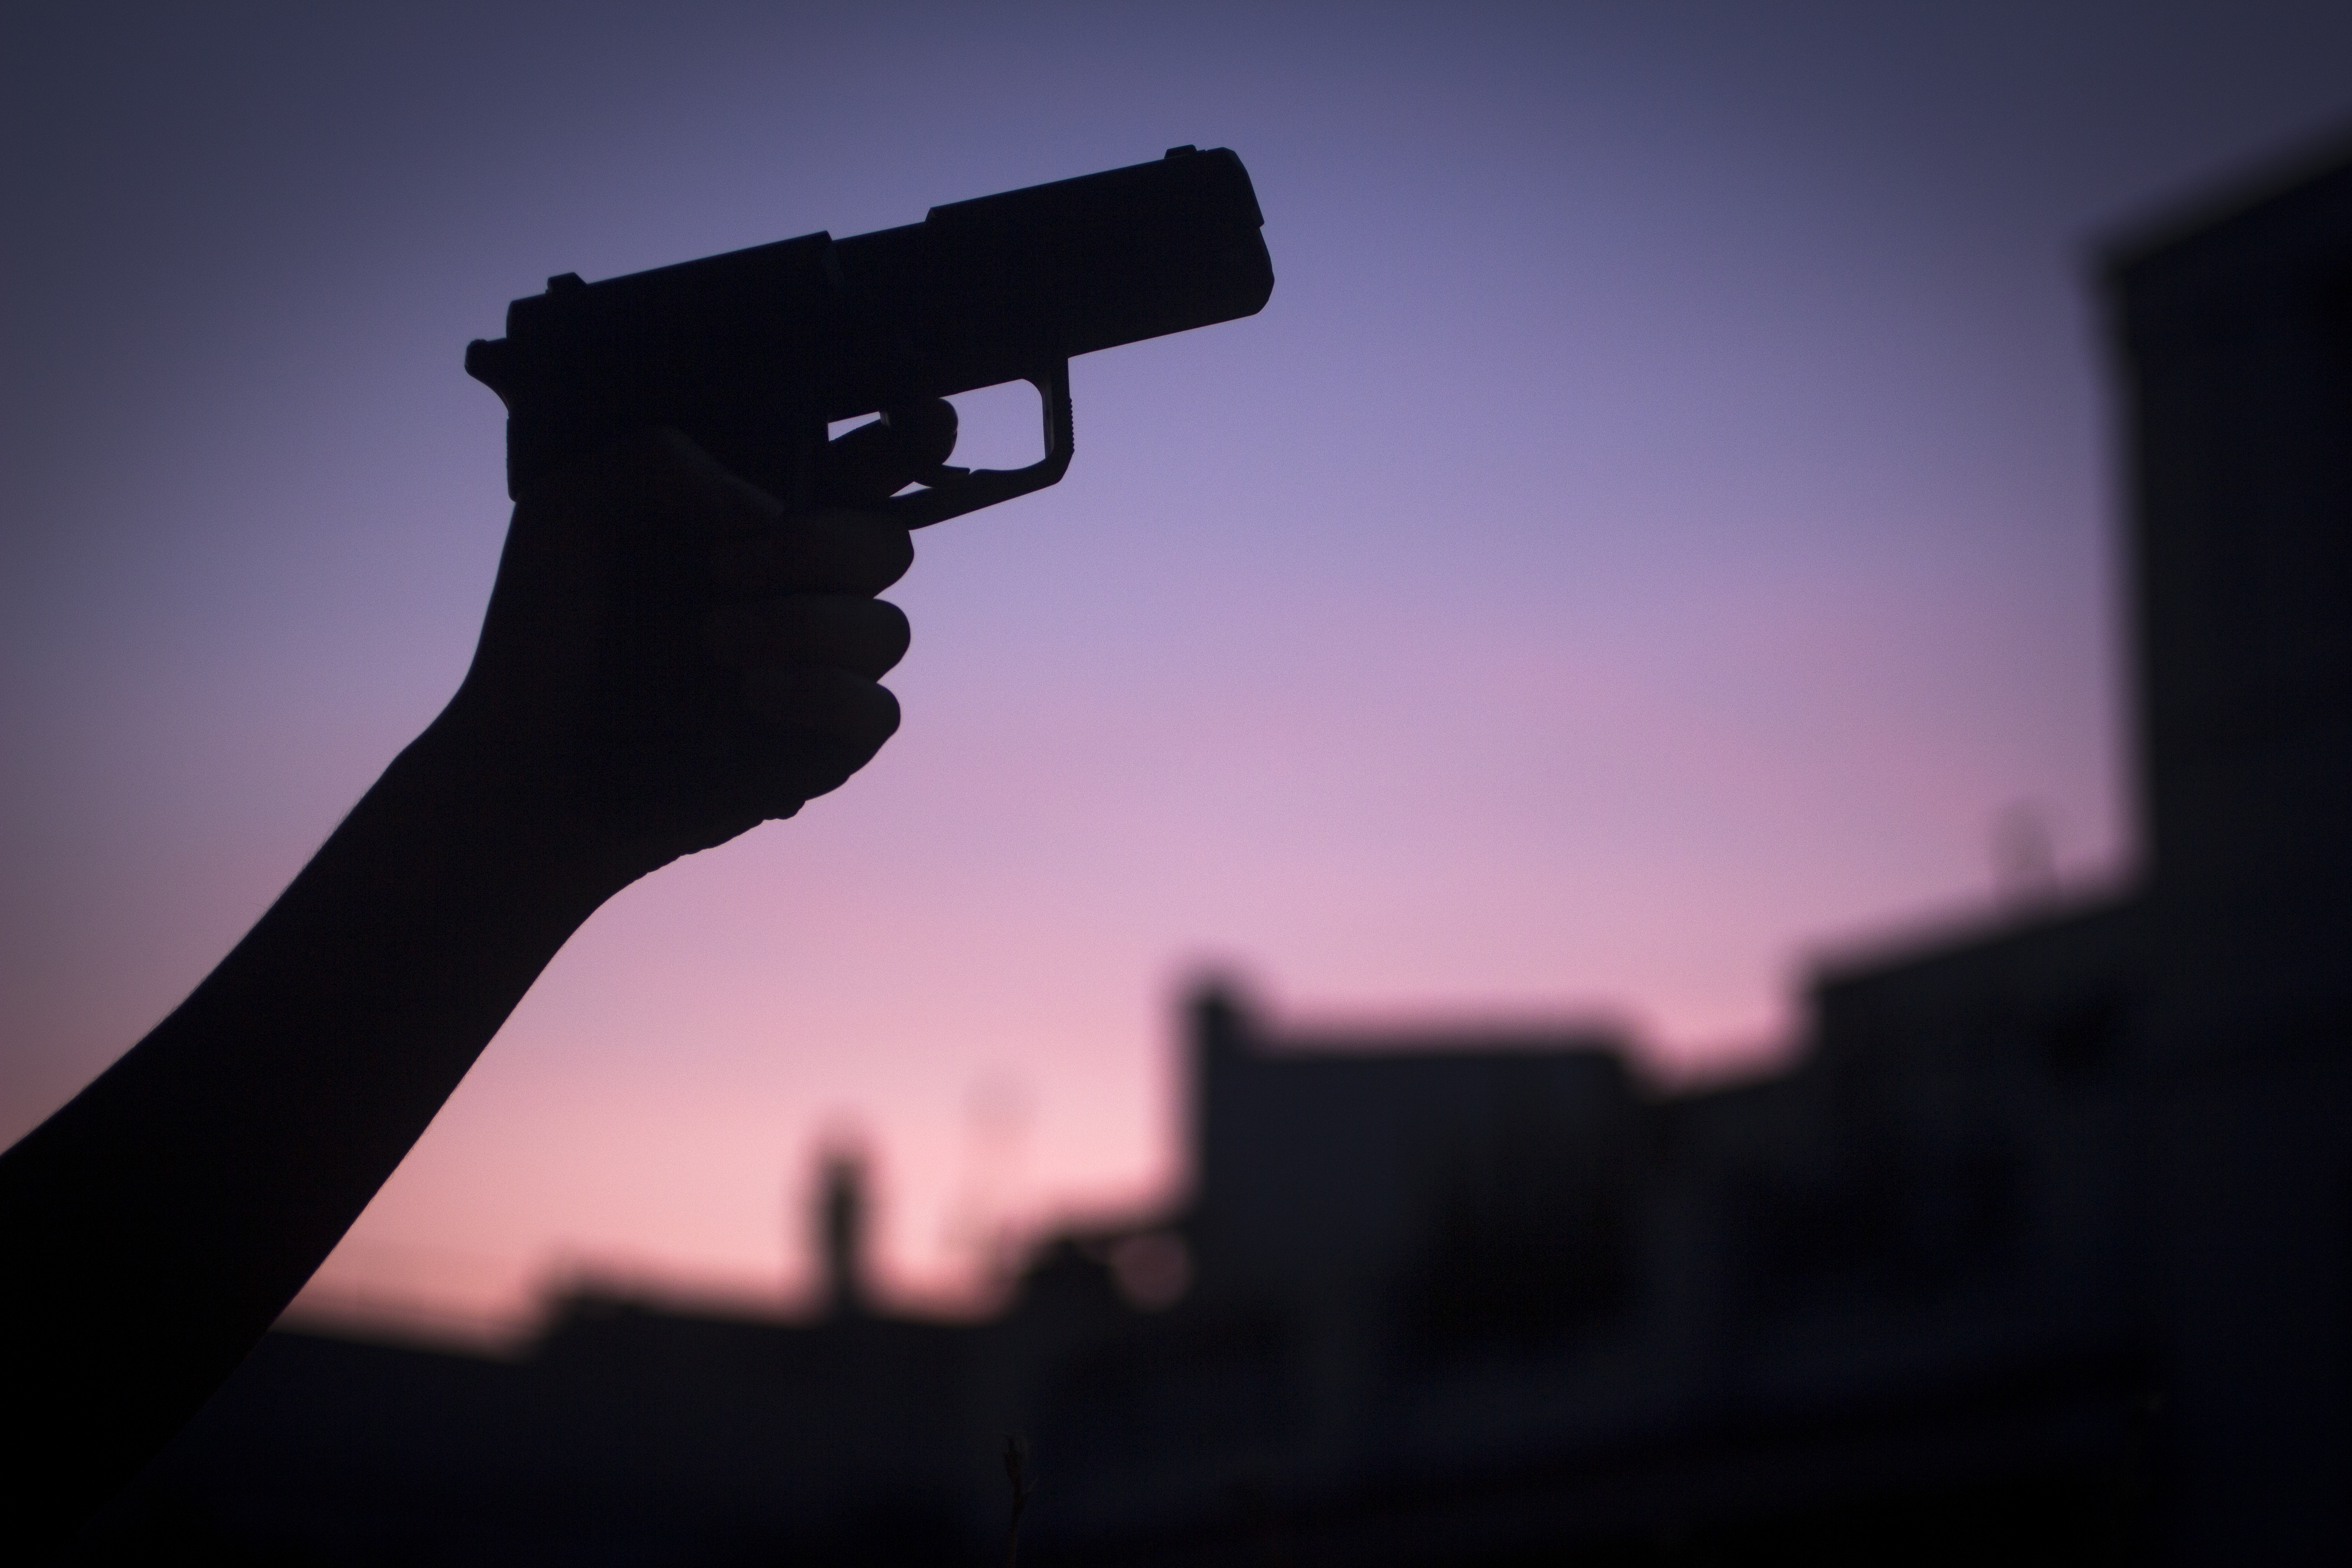 A new FBI report shows an increase in  active shooter  incidents, but that doesn't necessarily equate to more mass shootings, say criminologists.